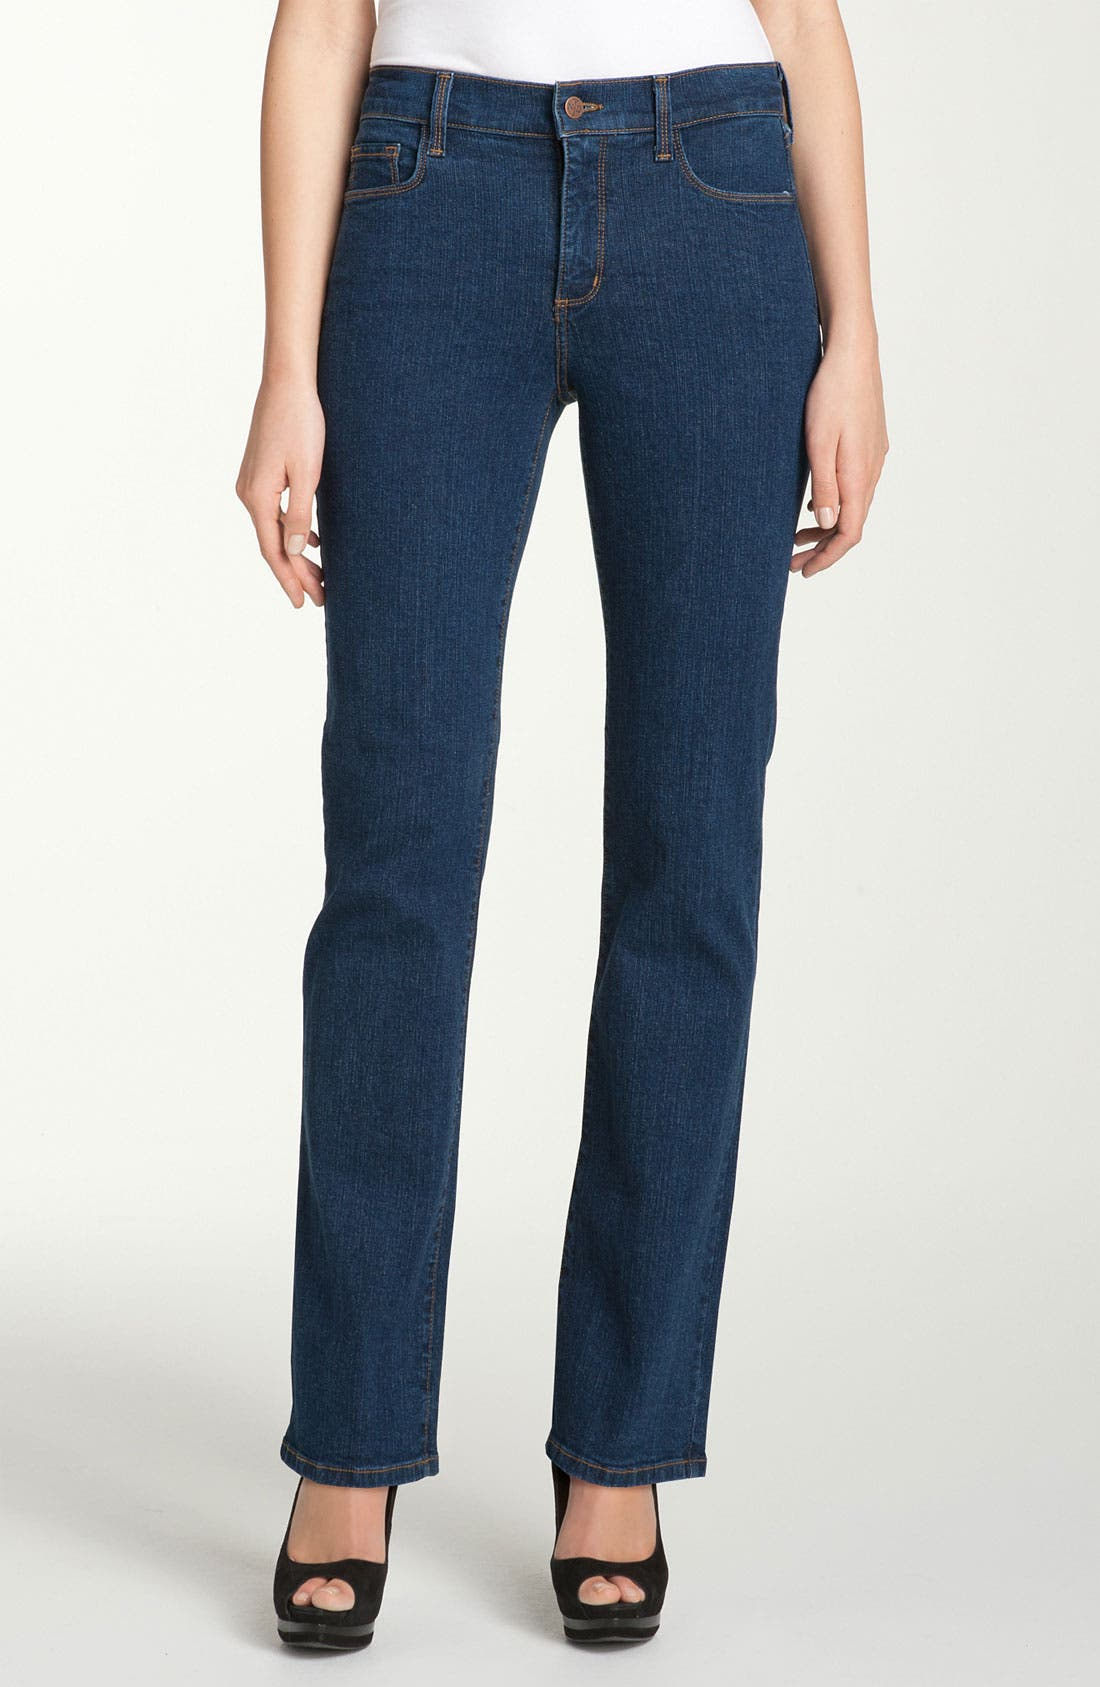 Alternate Image 1 Selected - NYDJ 'Marilyn' Stretch Straight Leg Jeans (Denim) (Regular & Petite)